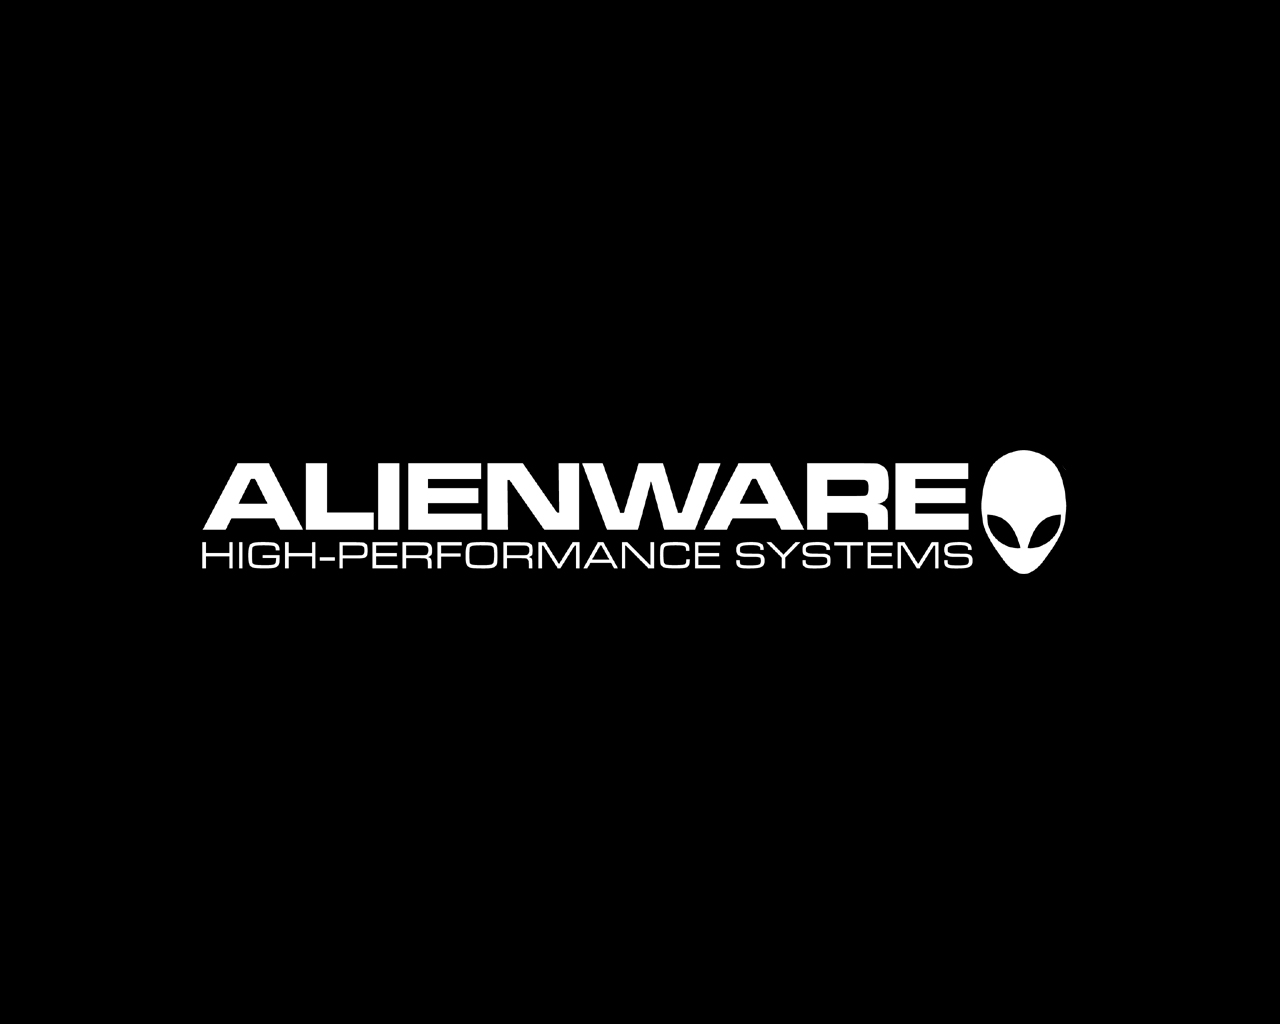 Alienware Wallpaper 6